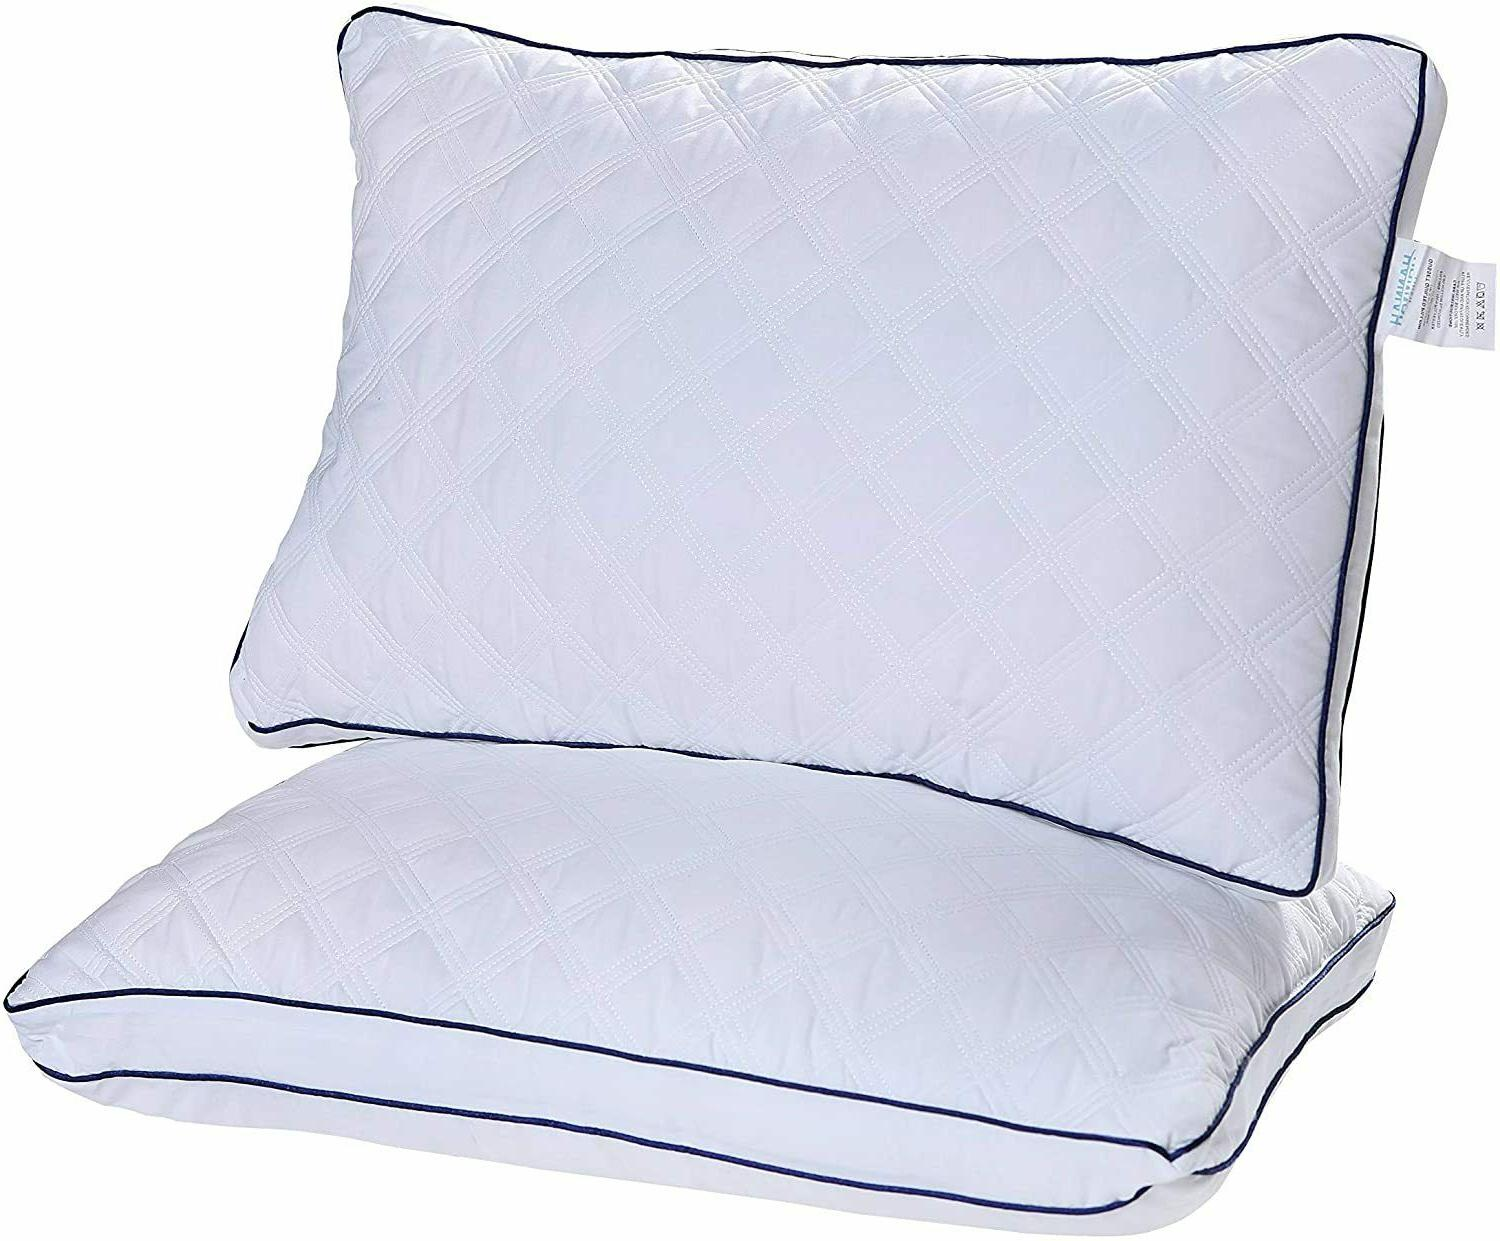 2 Pillows Ultra Gusseted Bed Pillows Side and Back